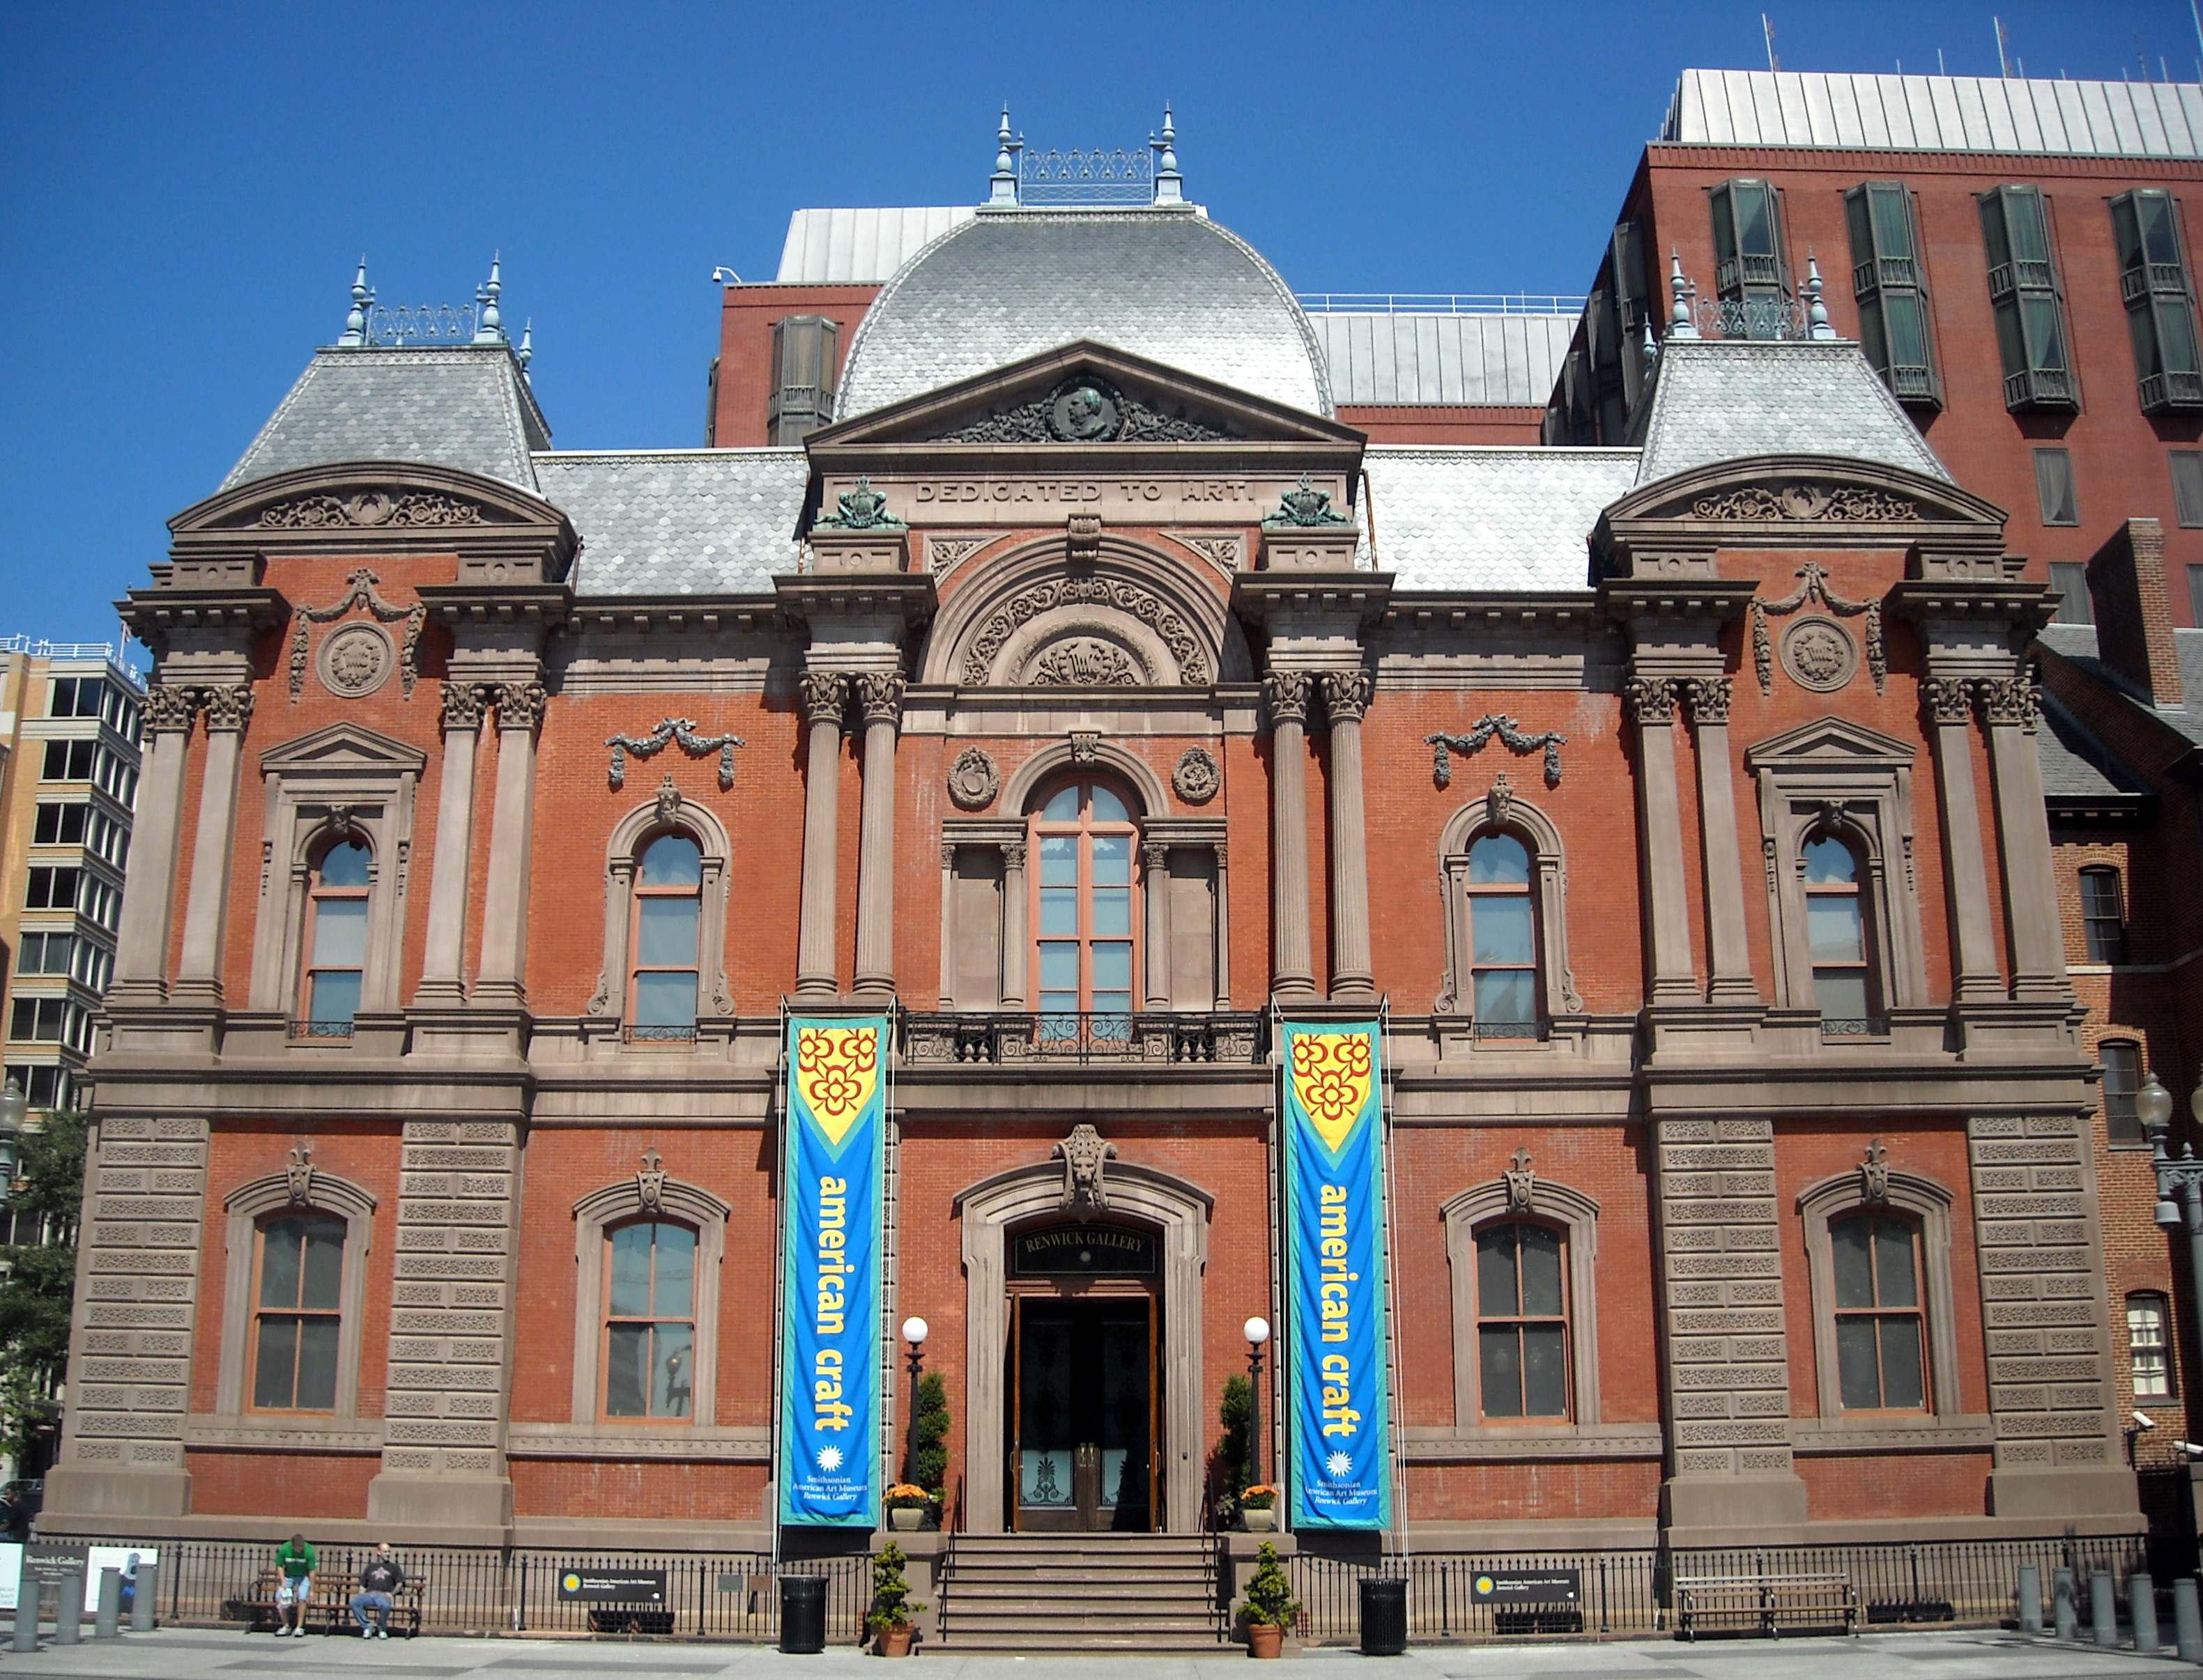 The Renwick Gallery, a branch of the Smithsonian American Art Museum since 1972. Image by AgnosticPreachersKid. Licensed under CC BY-SA 3.0 via Wikimedia Commons.